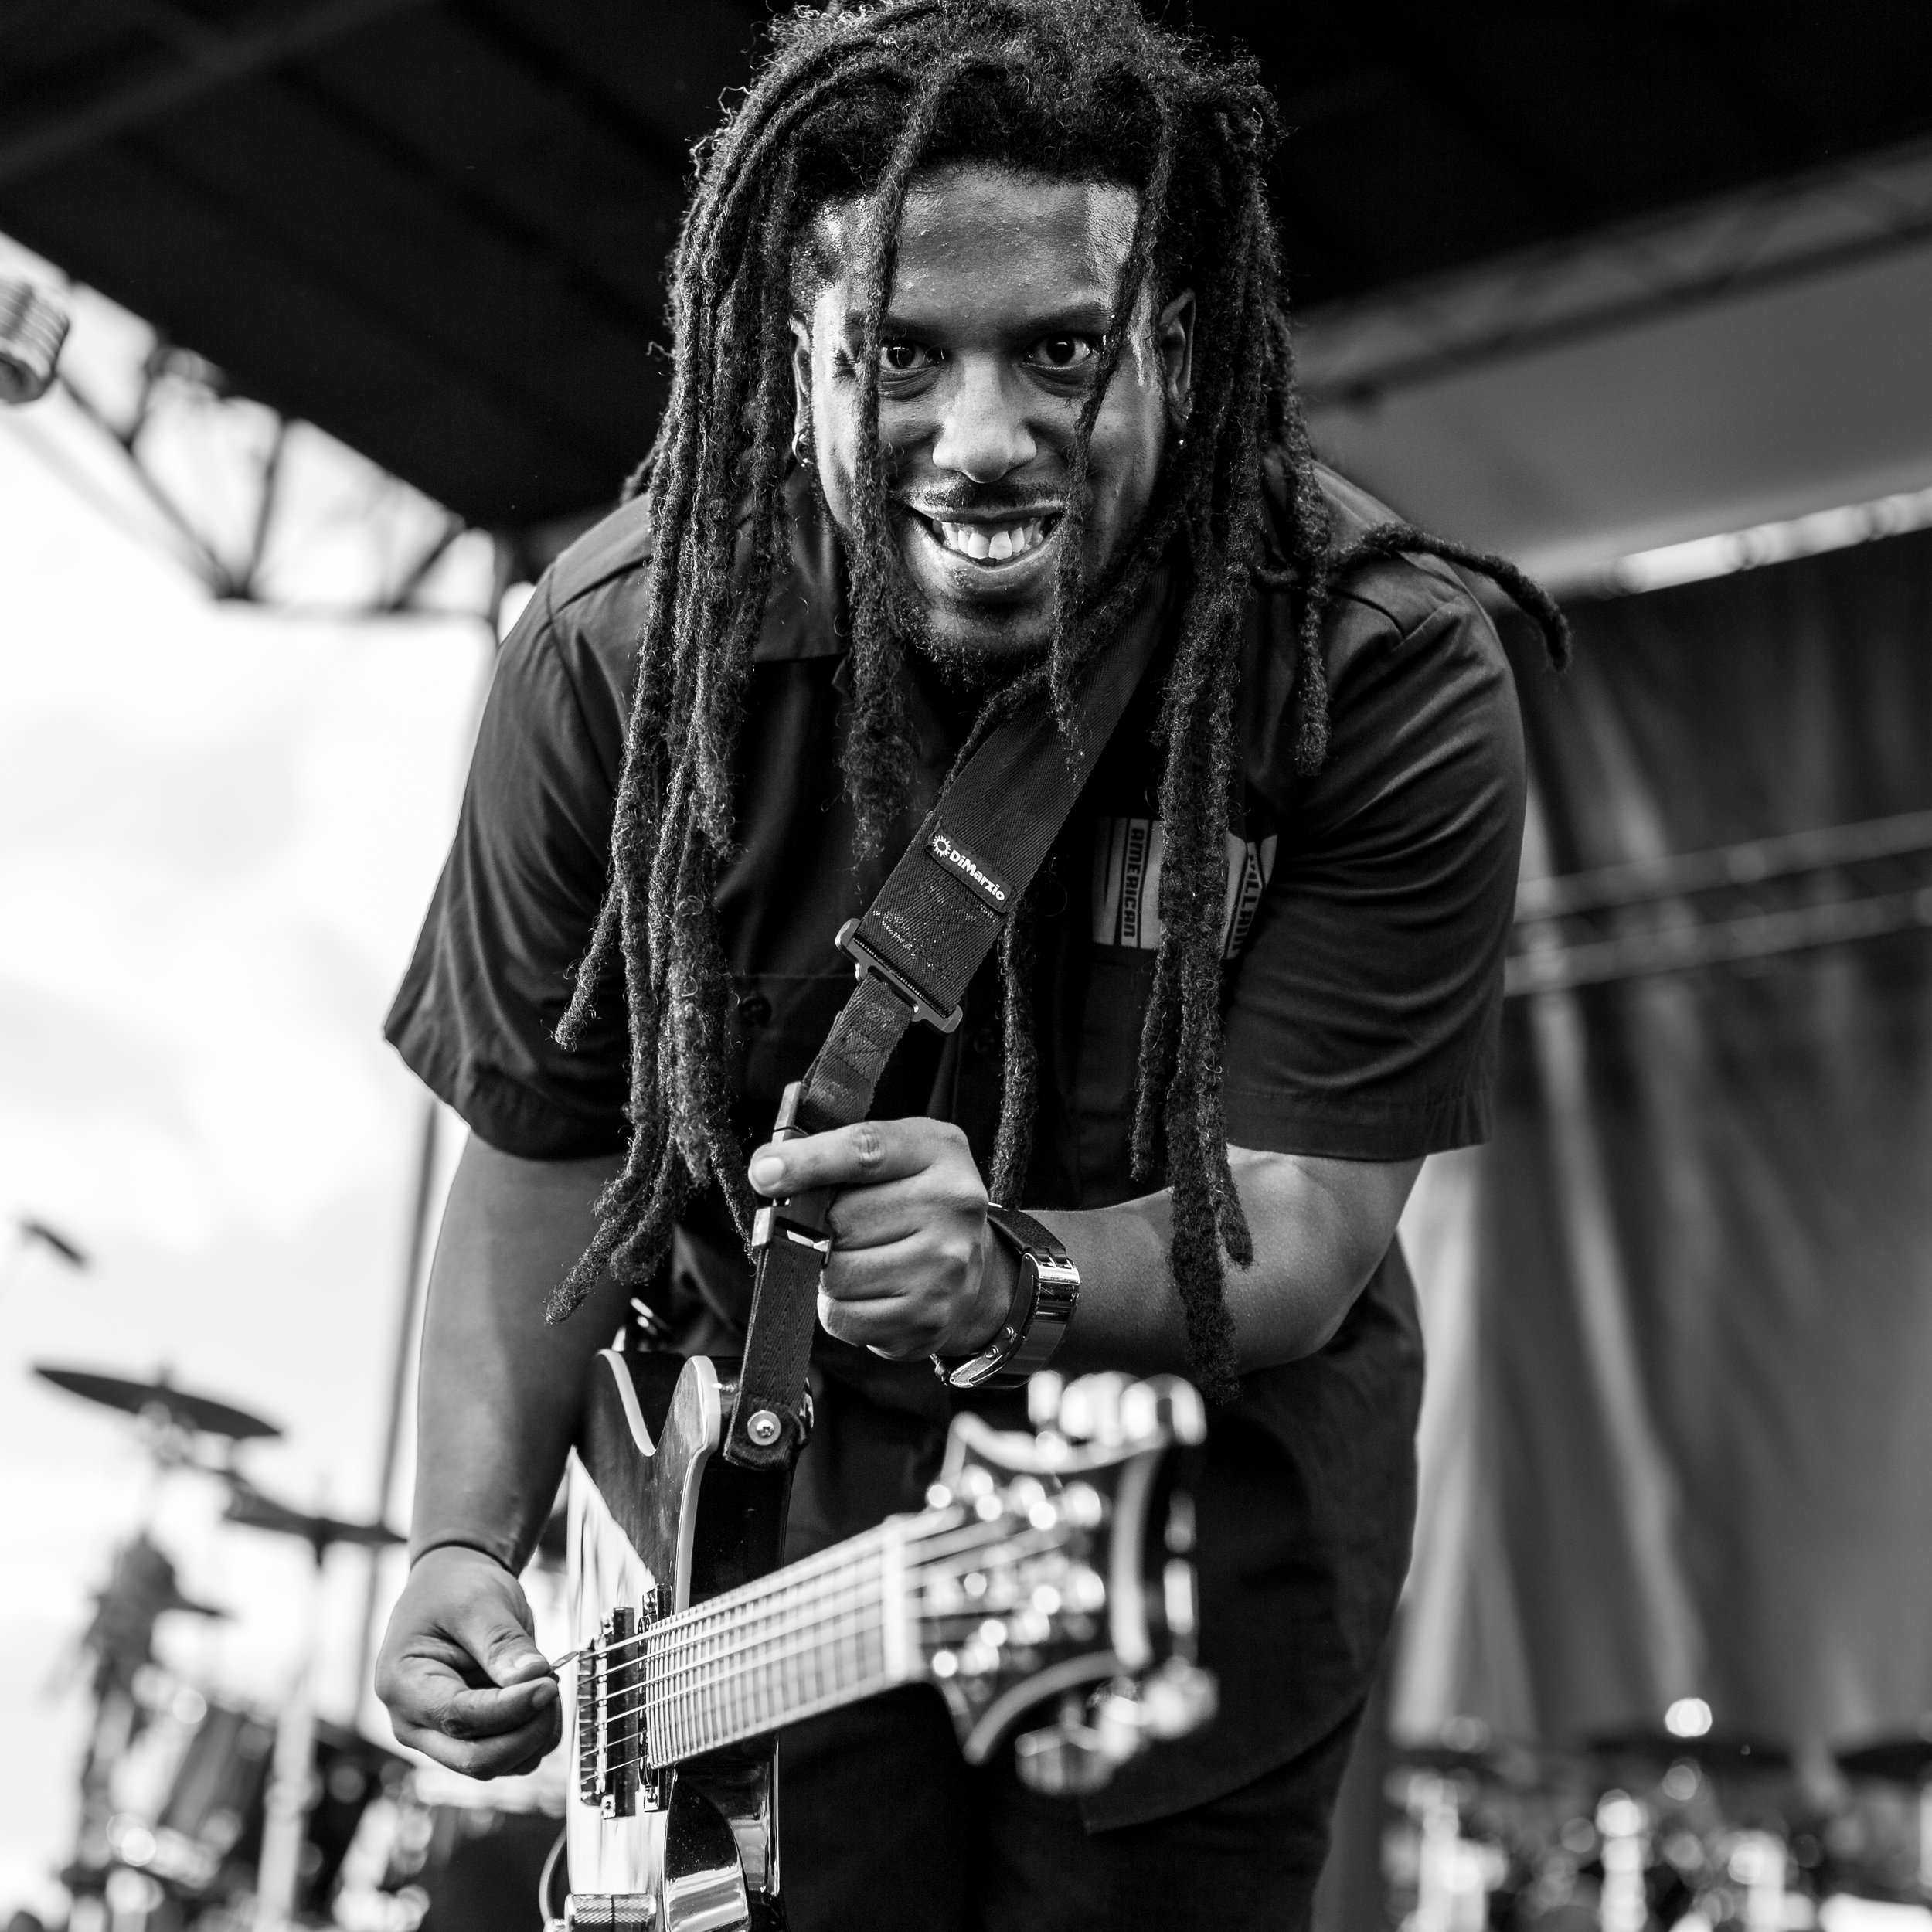 Rasheed Thomas | Nonpoint